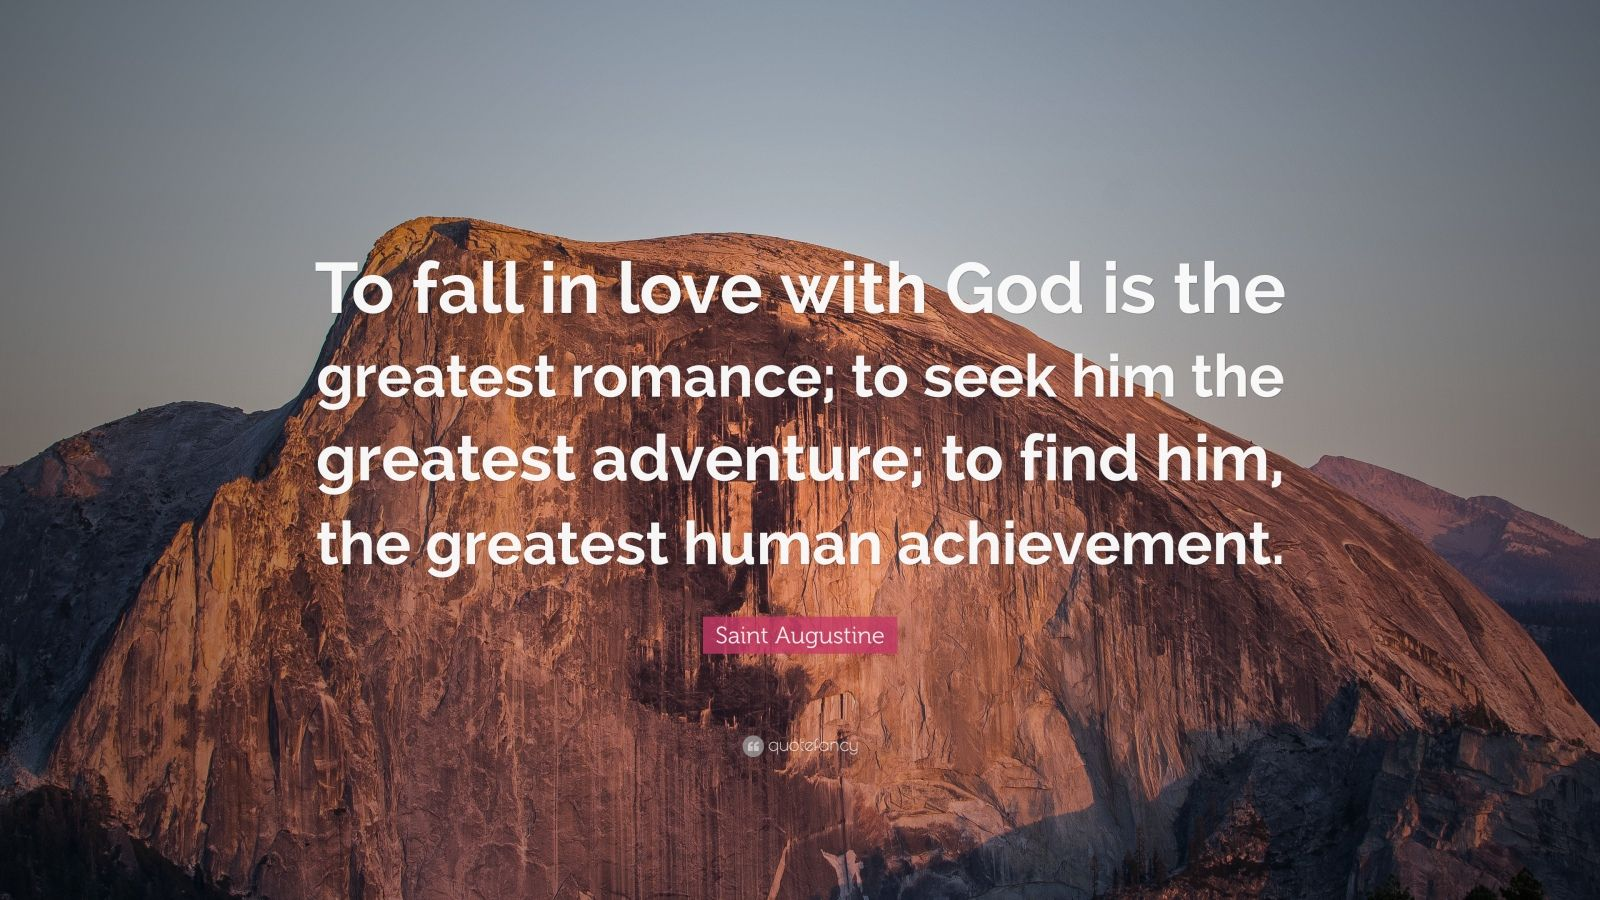 Wallpapers Of Christian Quotes Saint Augustine Quote To Fall In Love With God Is The